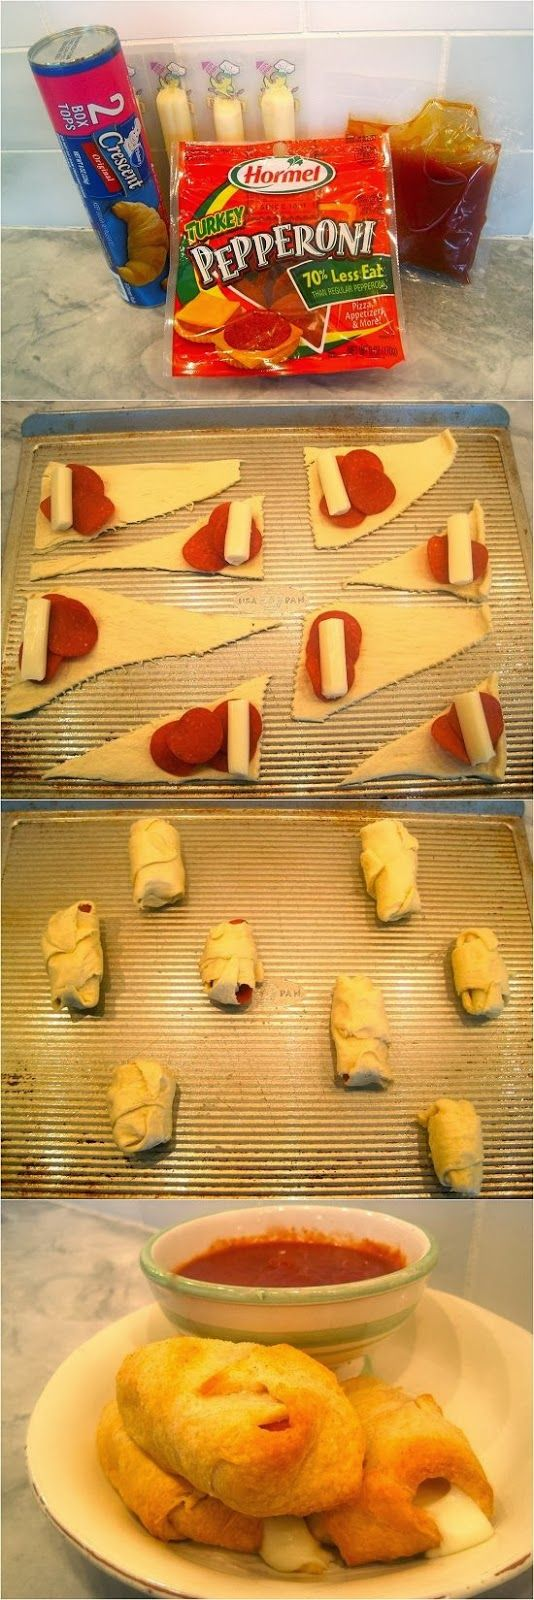 We make these all the time for a quick dinner!! One of our favorites!! FunStocki: Croissant Pizza Roll-Ups